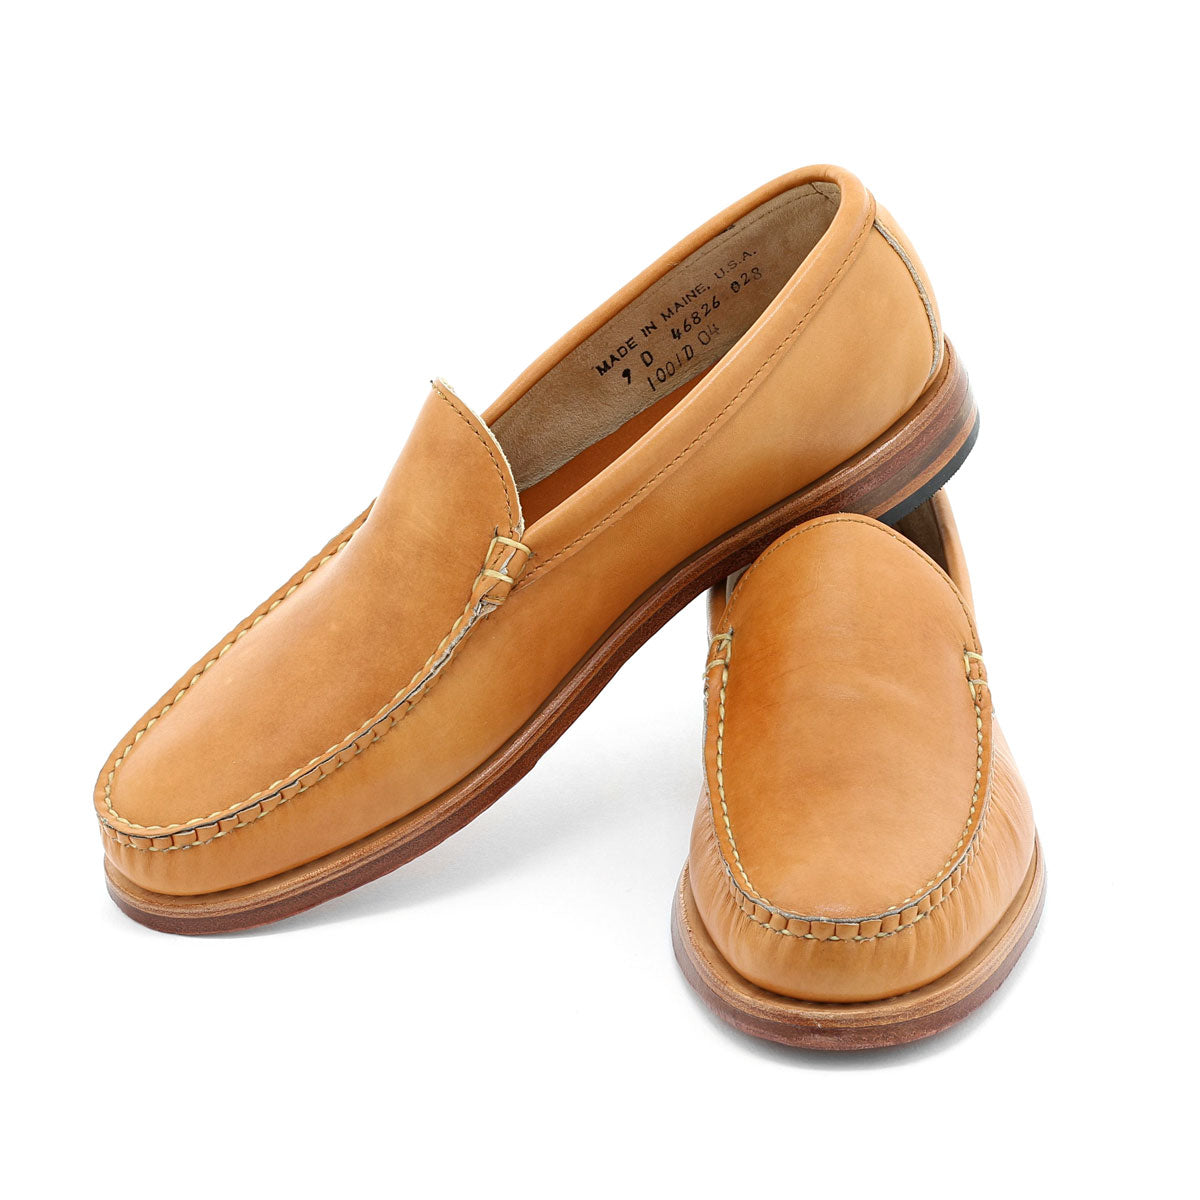 Dirigo Venetian Loafer - Natural Burnished Calf